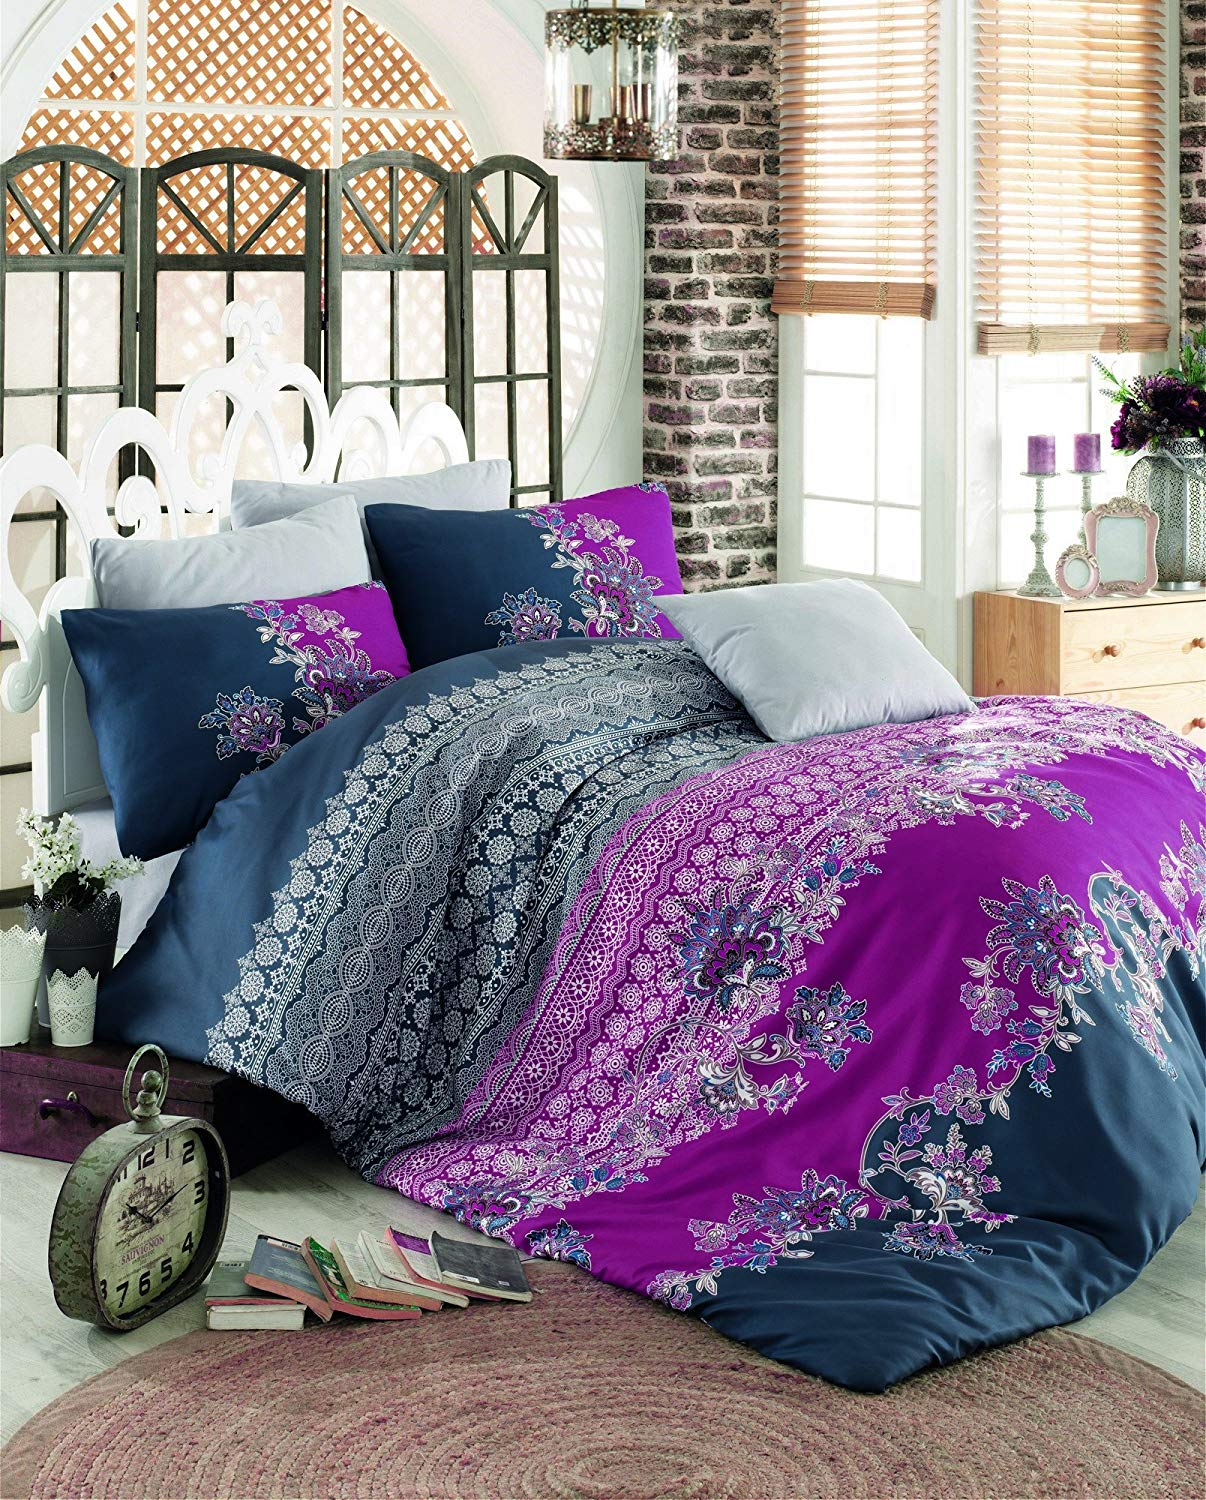 LaModaHome 3 Pcs Luxury Soft Colored Full and Double Bed Size Bedroom Bedding 100% Cotton Ranforce Quilt Duvet Cover Set Purple and Navy Blue Flower Motif Design Shape